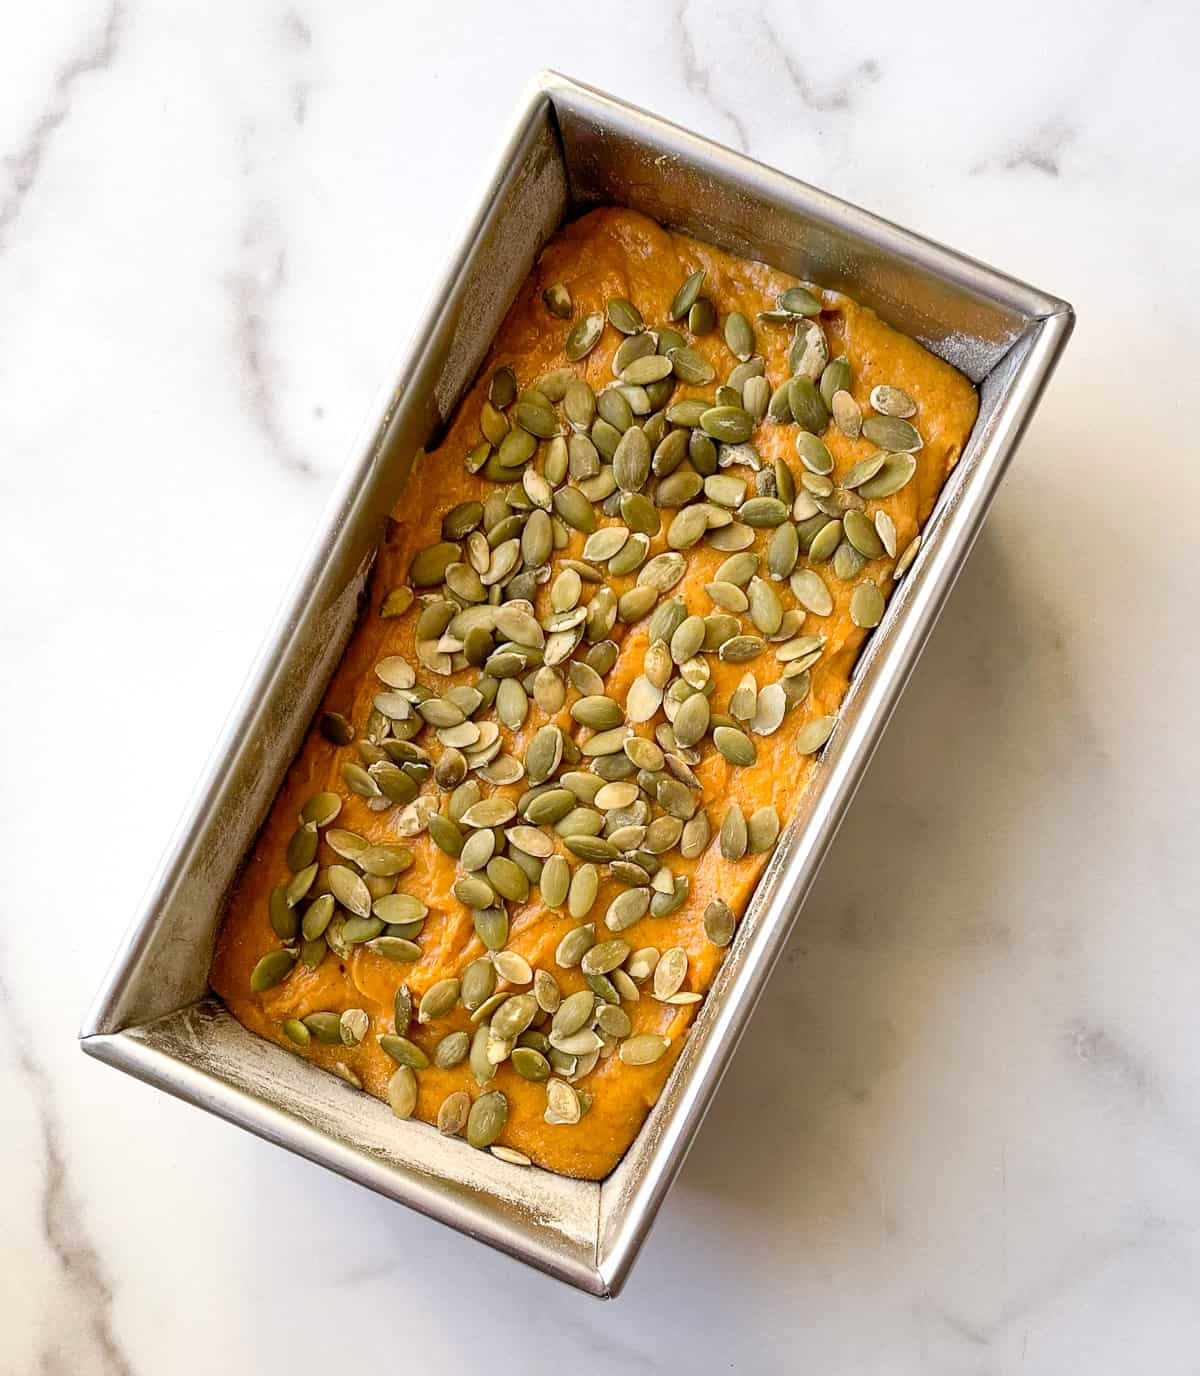 Topping batter with pumpkin seeds